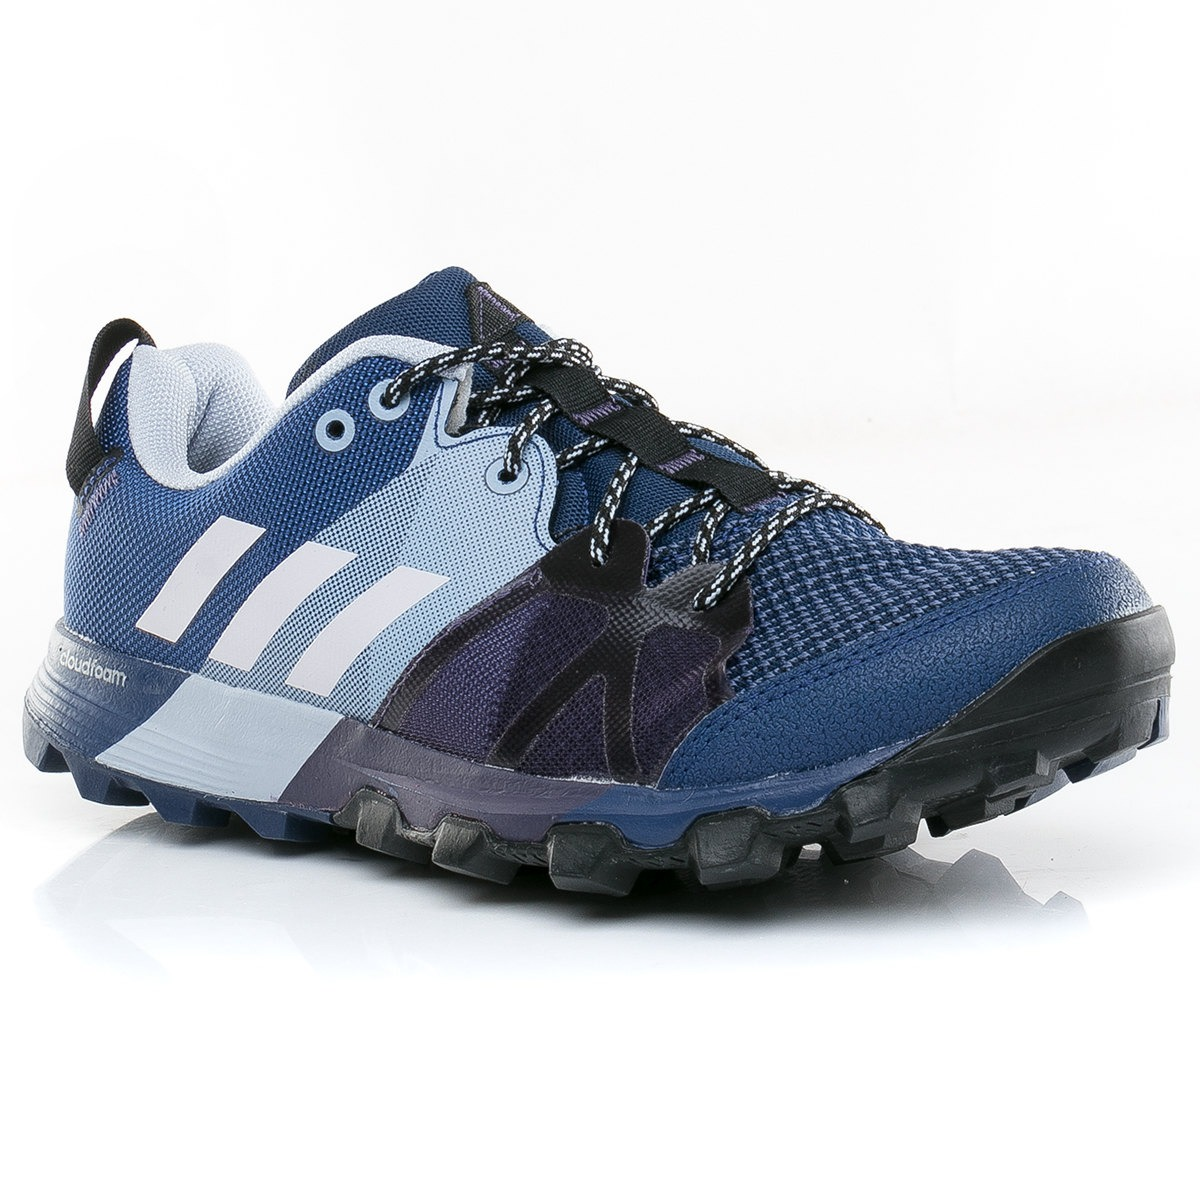 huge discount f3135 70d14 zapatillas kanadia 8.1 tr w adidas. Cargando zoom.